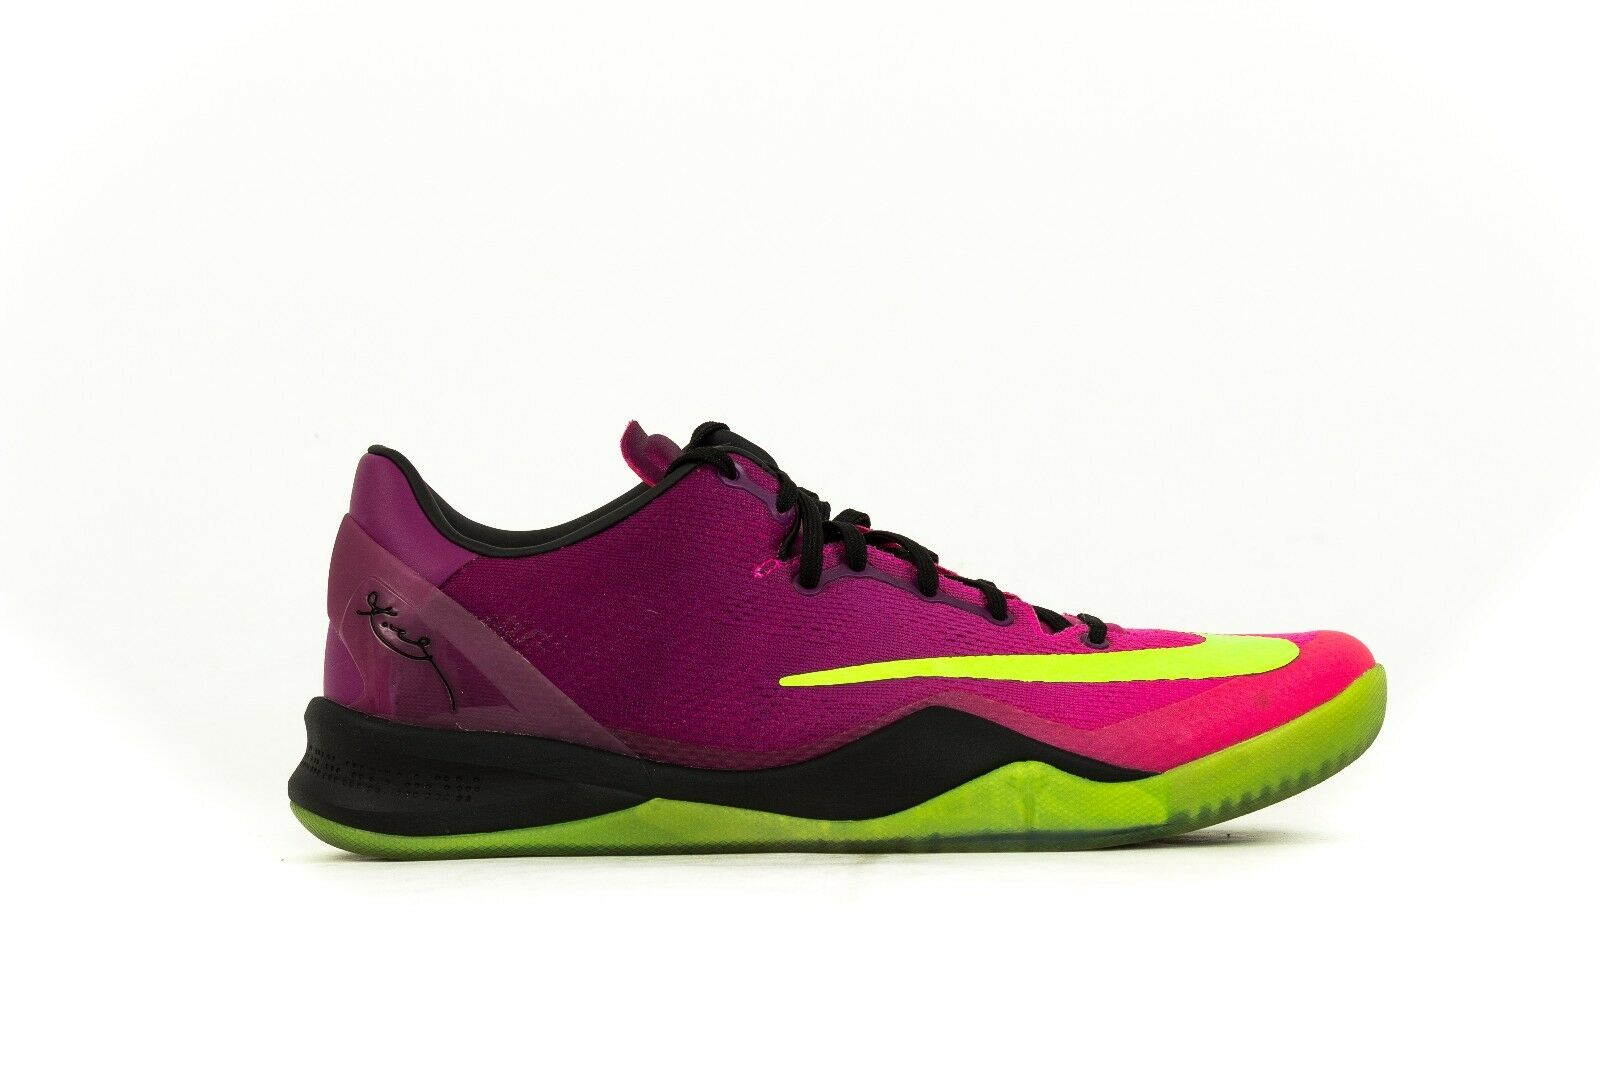 new style 8b525 aad46 greece männer nike kobe 8 system mambacurial mambacurial system mc 615315  500 größe 105 uns 77012b